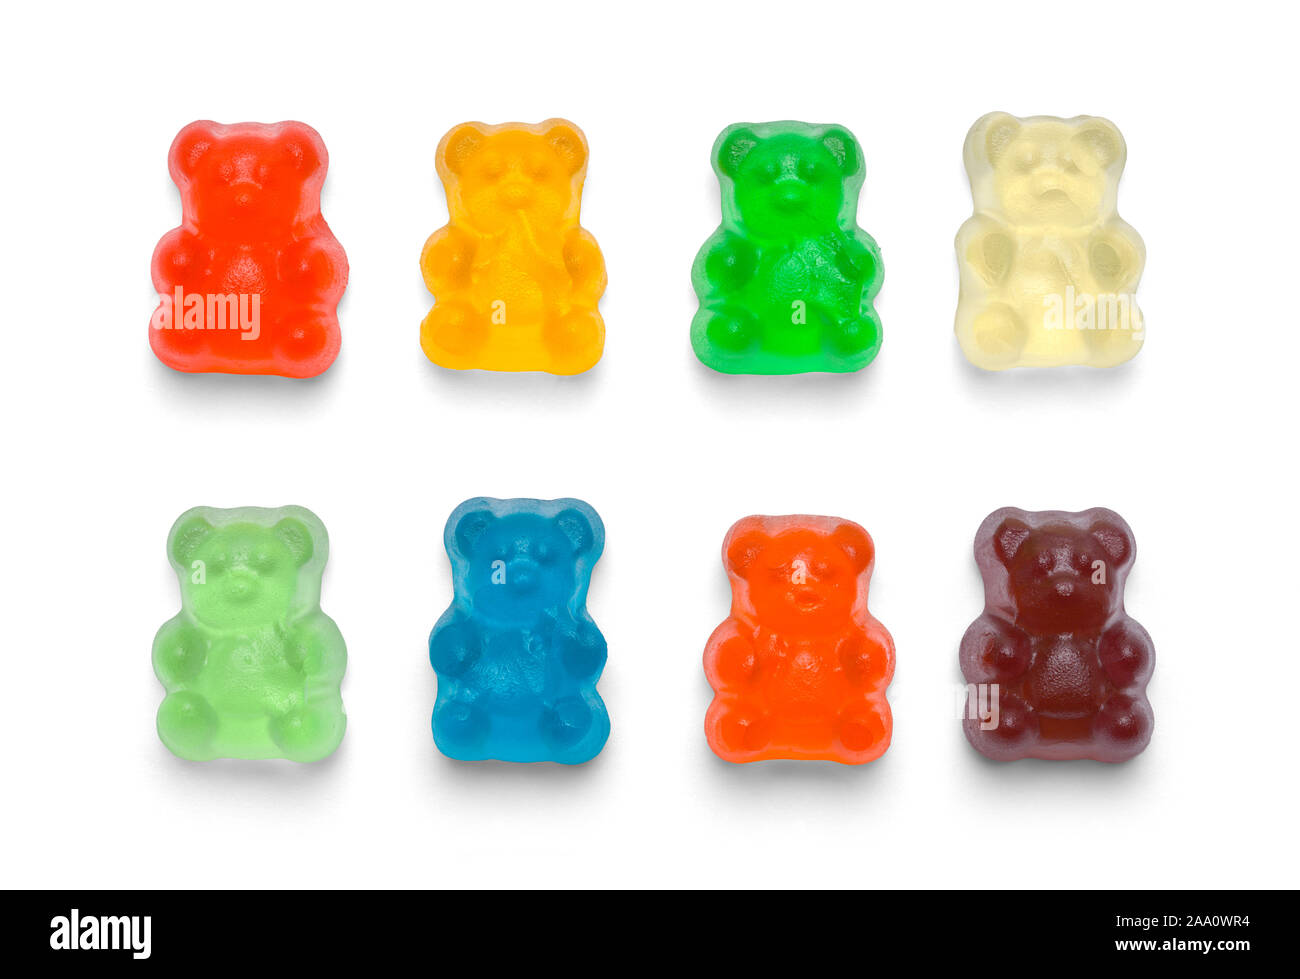 Several Colorful Gummy Bears Isolated on White Background. Stock Photo